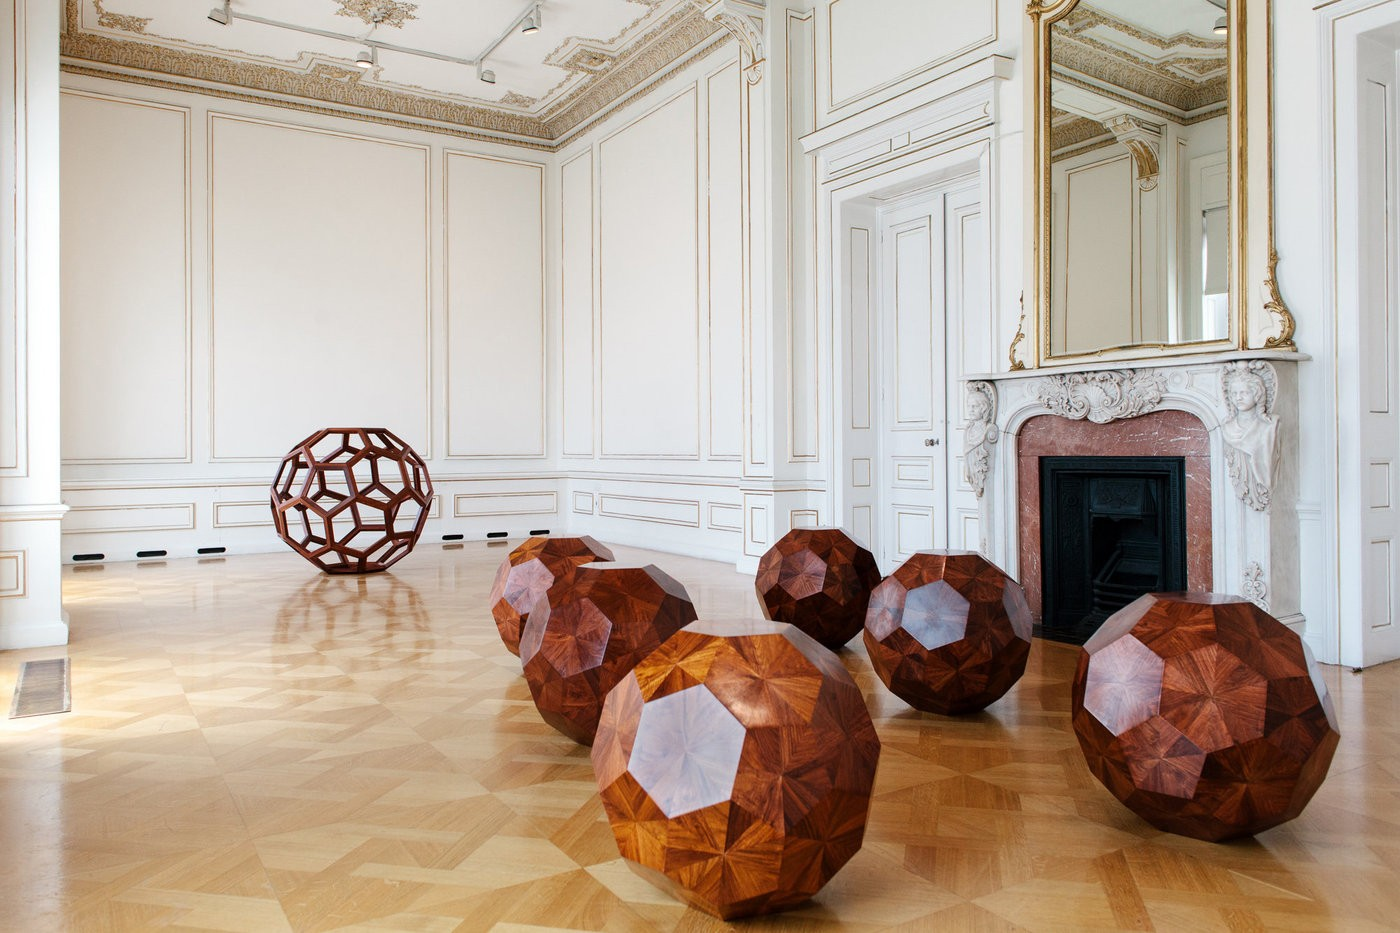 Medium ai 20weiwei 20divina 20proportione 2c 202012 20huali 20wood 2c 20 c3 b8 20130 20 2070 20cm 20photo 20paris 20tavitian 20 c2 a9museum 20of 20cycladic 20art